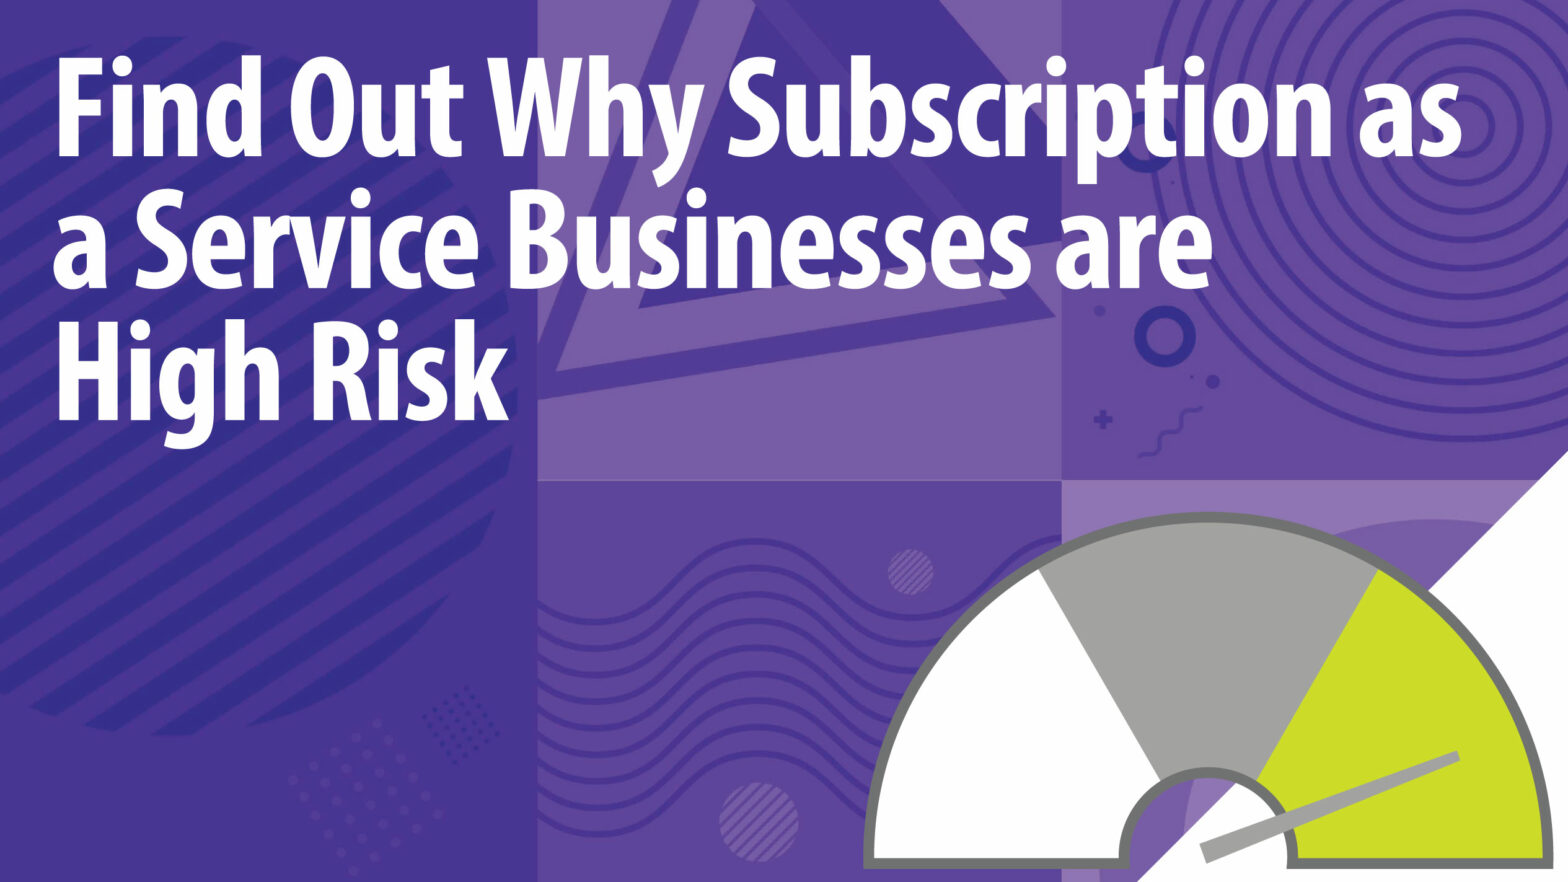 Subscription as a Service Article Header